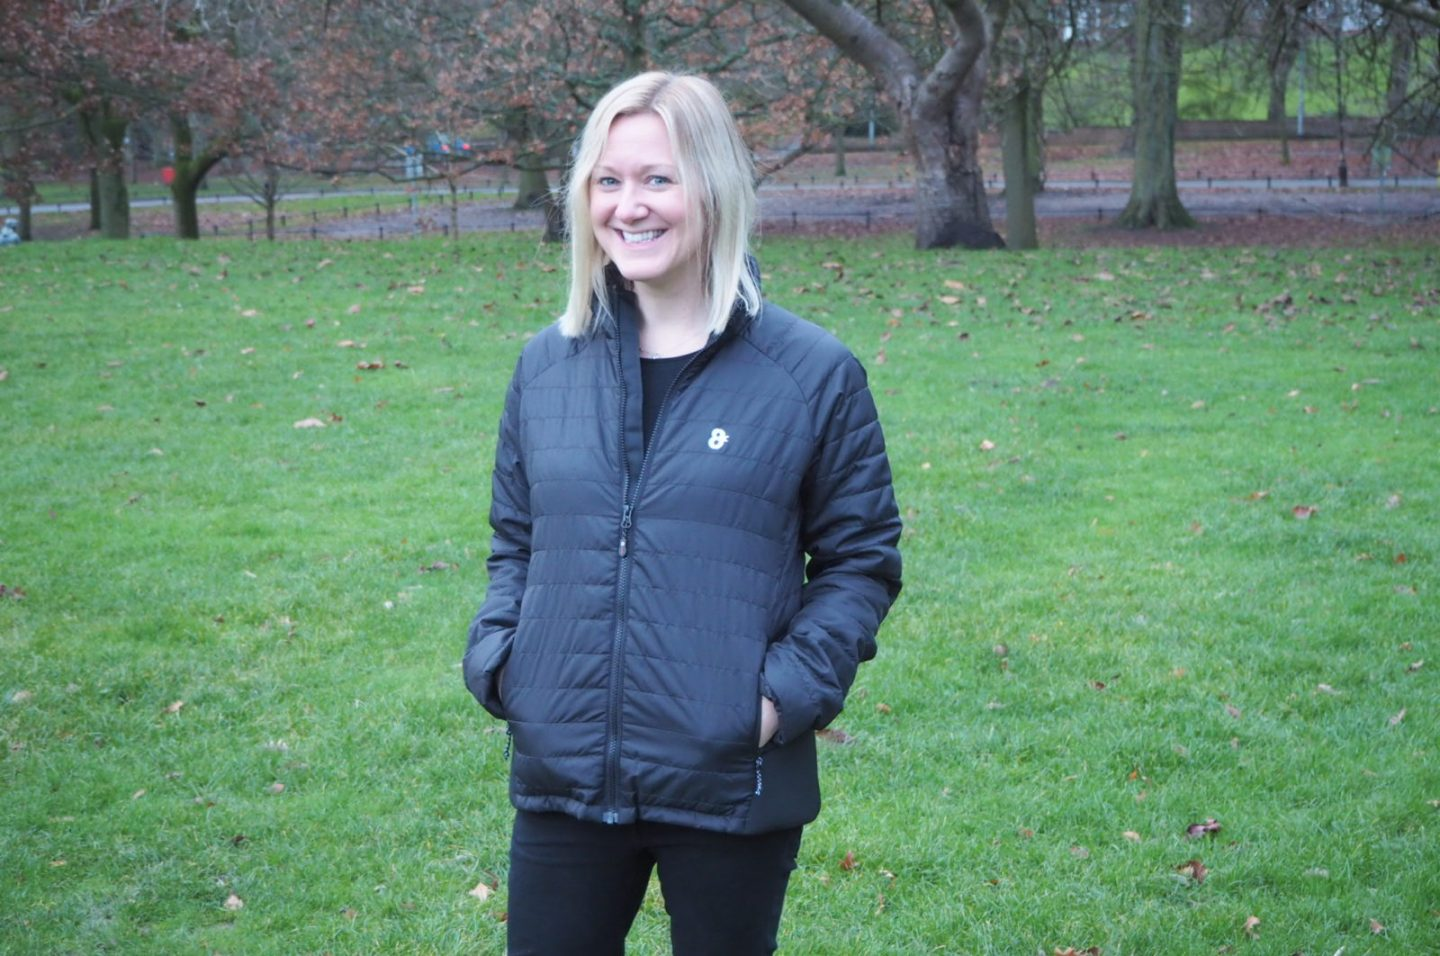 8K Flexwarm Heated Jacket: Review